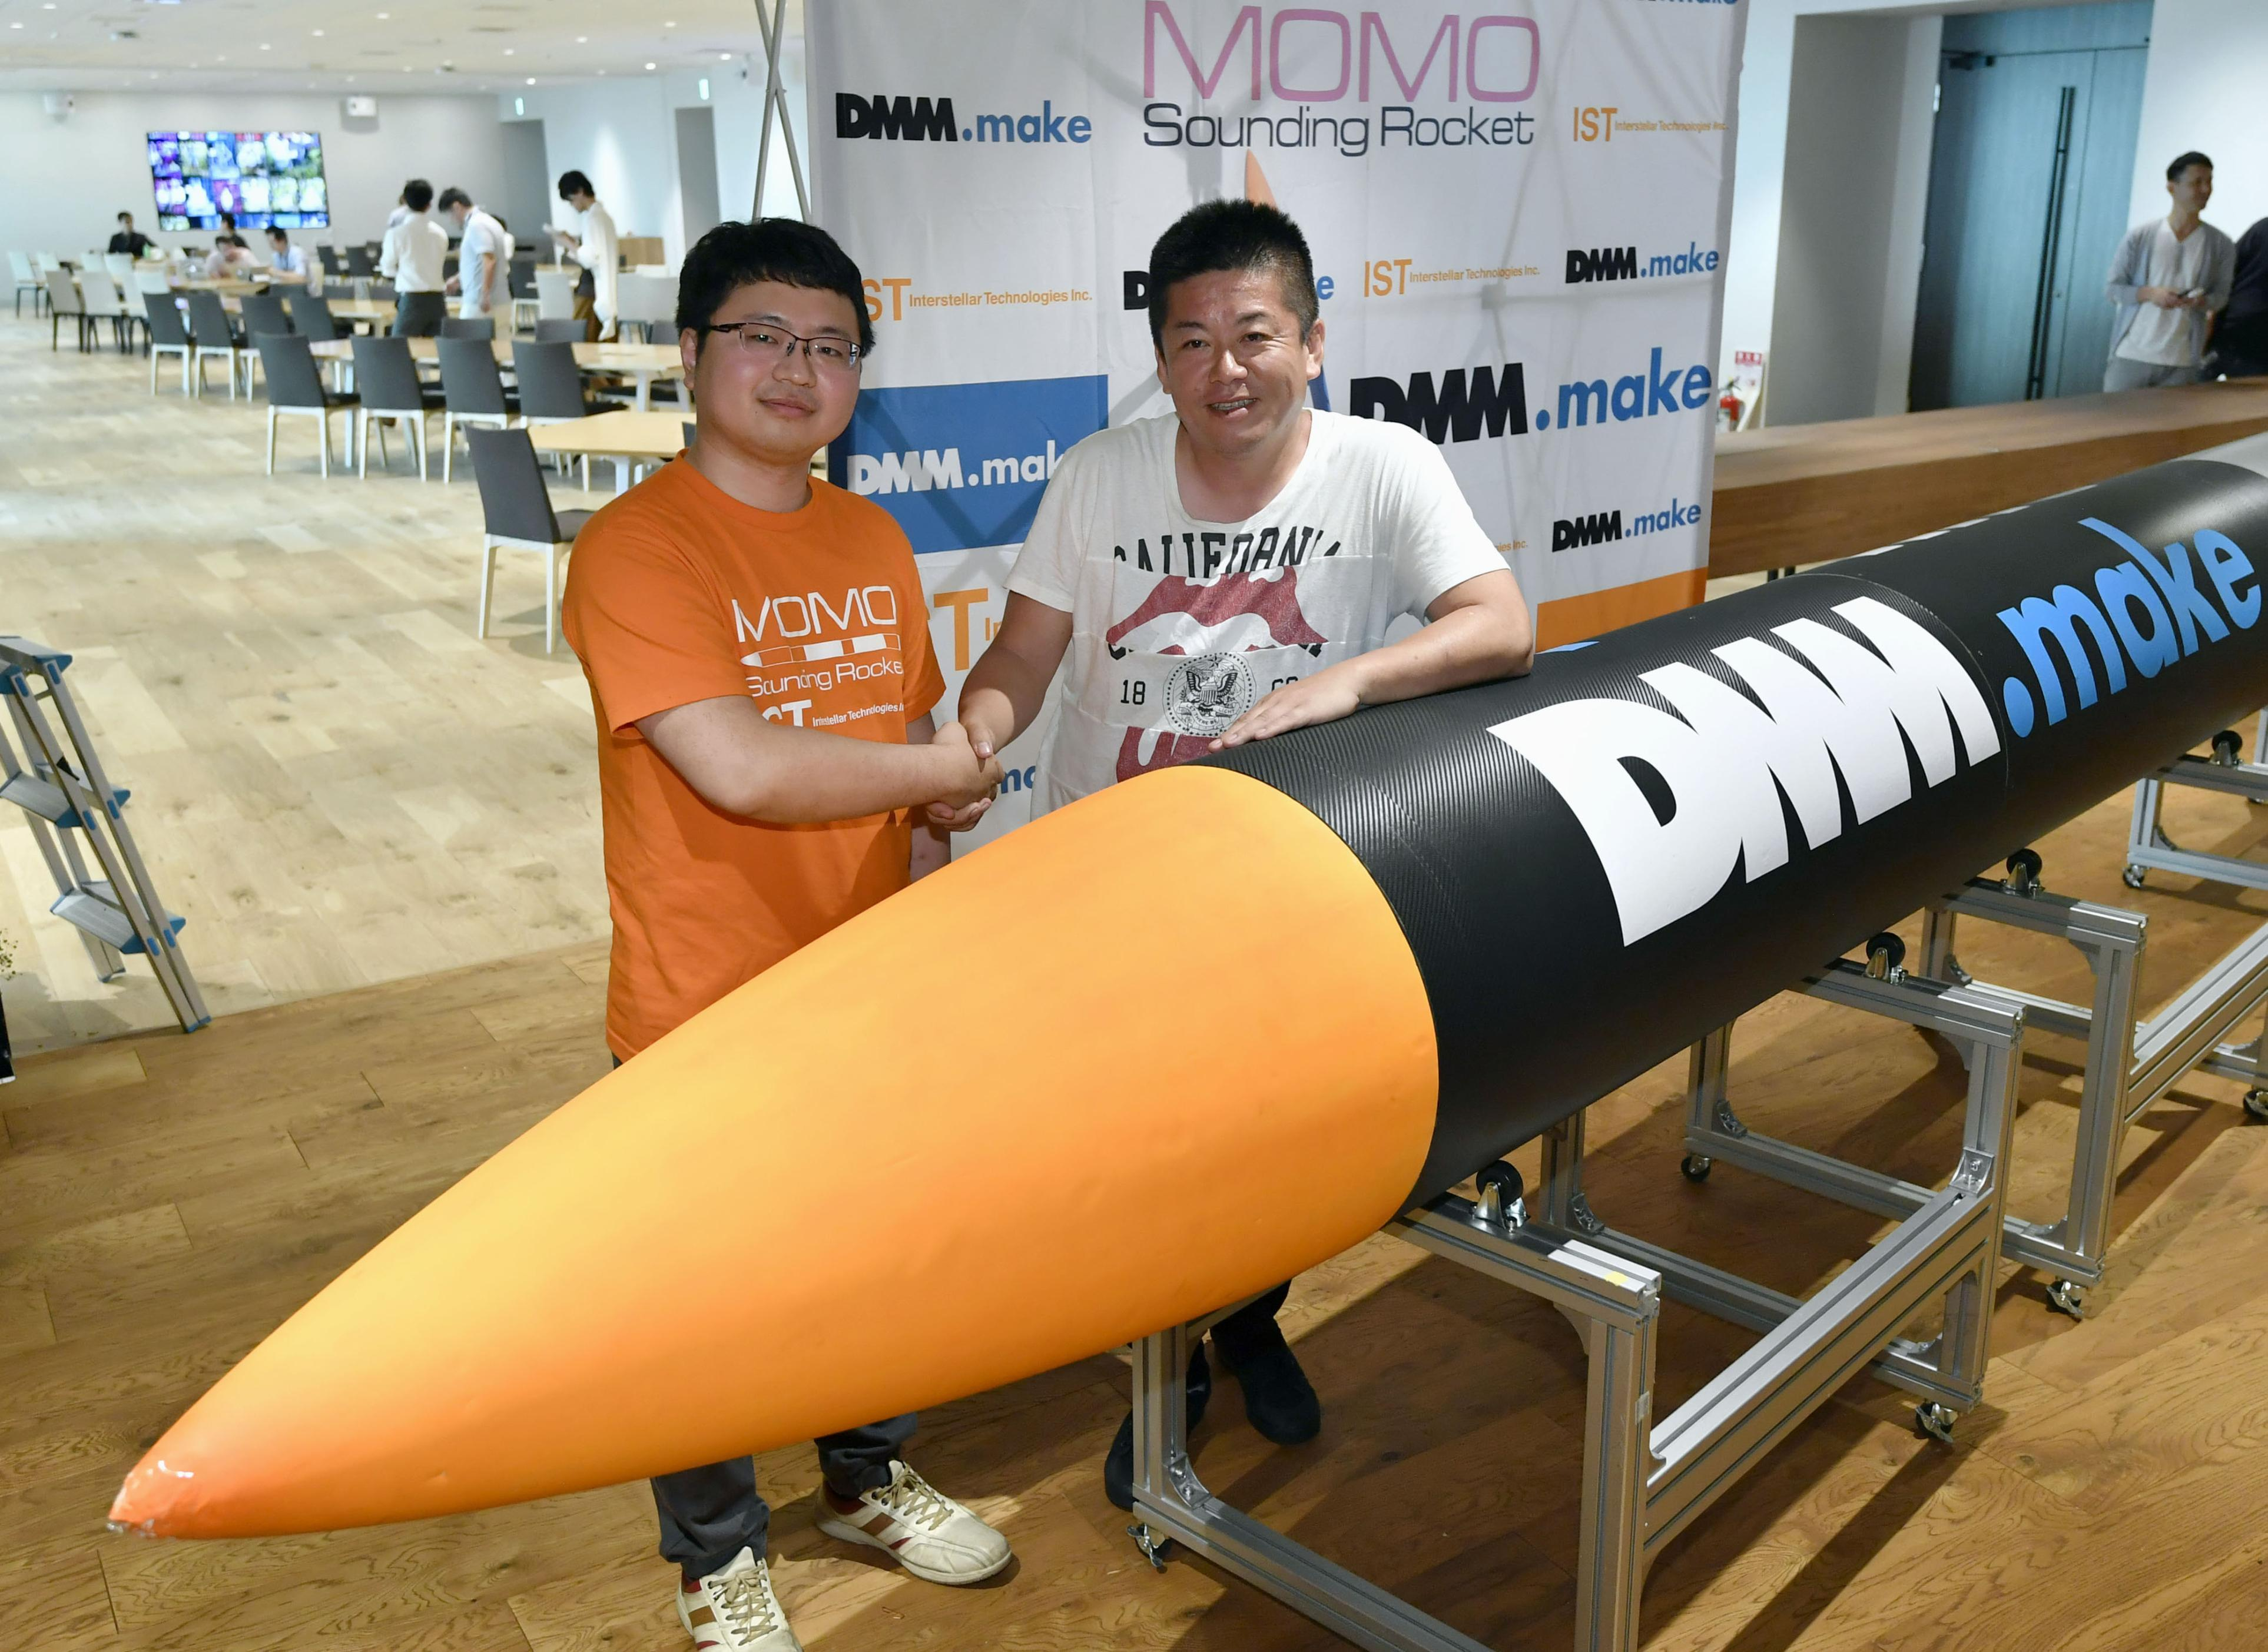 Hokkaido venture to launch privately developed rocket on July 29